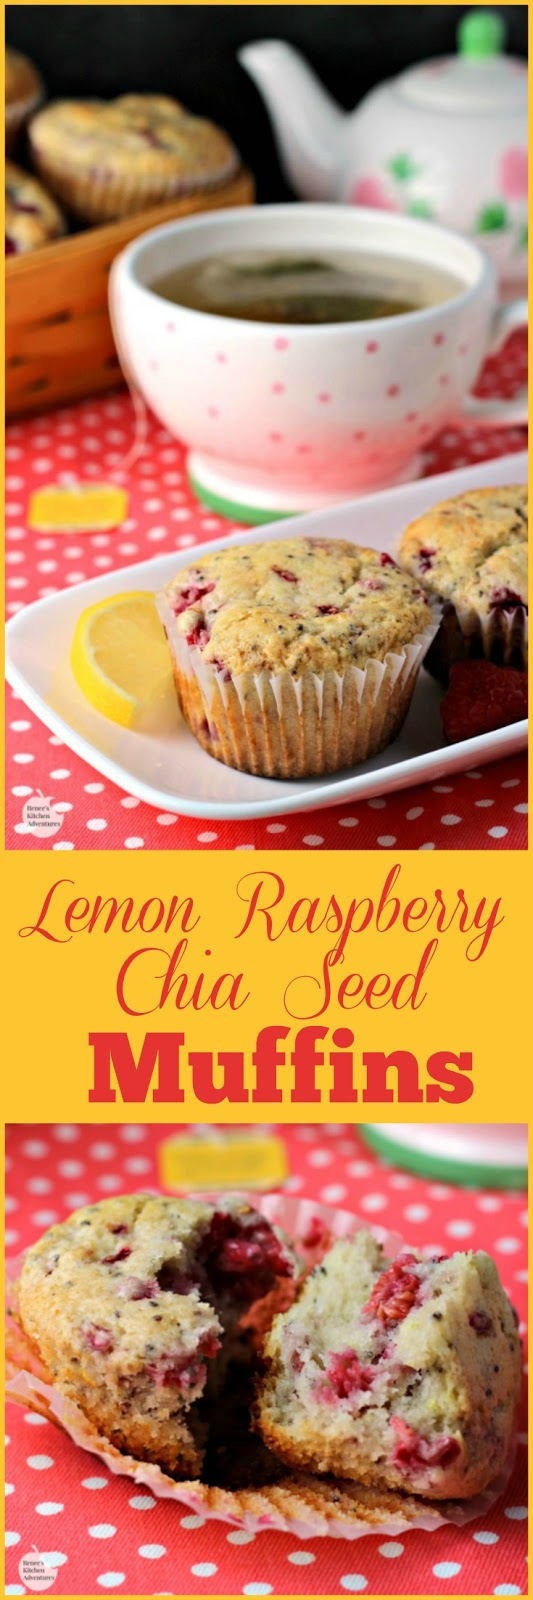 Lemon Raspberry Chia Seed Muffins | by Renee's Kitchen Adventures - Easy recipe for muffins great for snacks or breakfast #MeandMyTea ad  @Bigelowtea